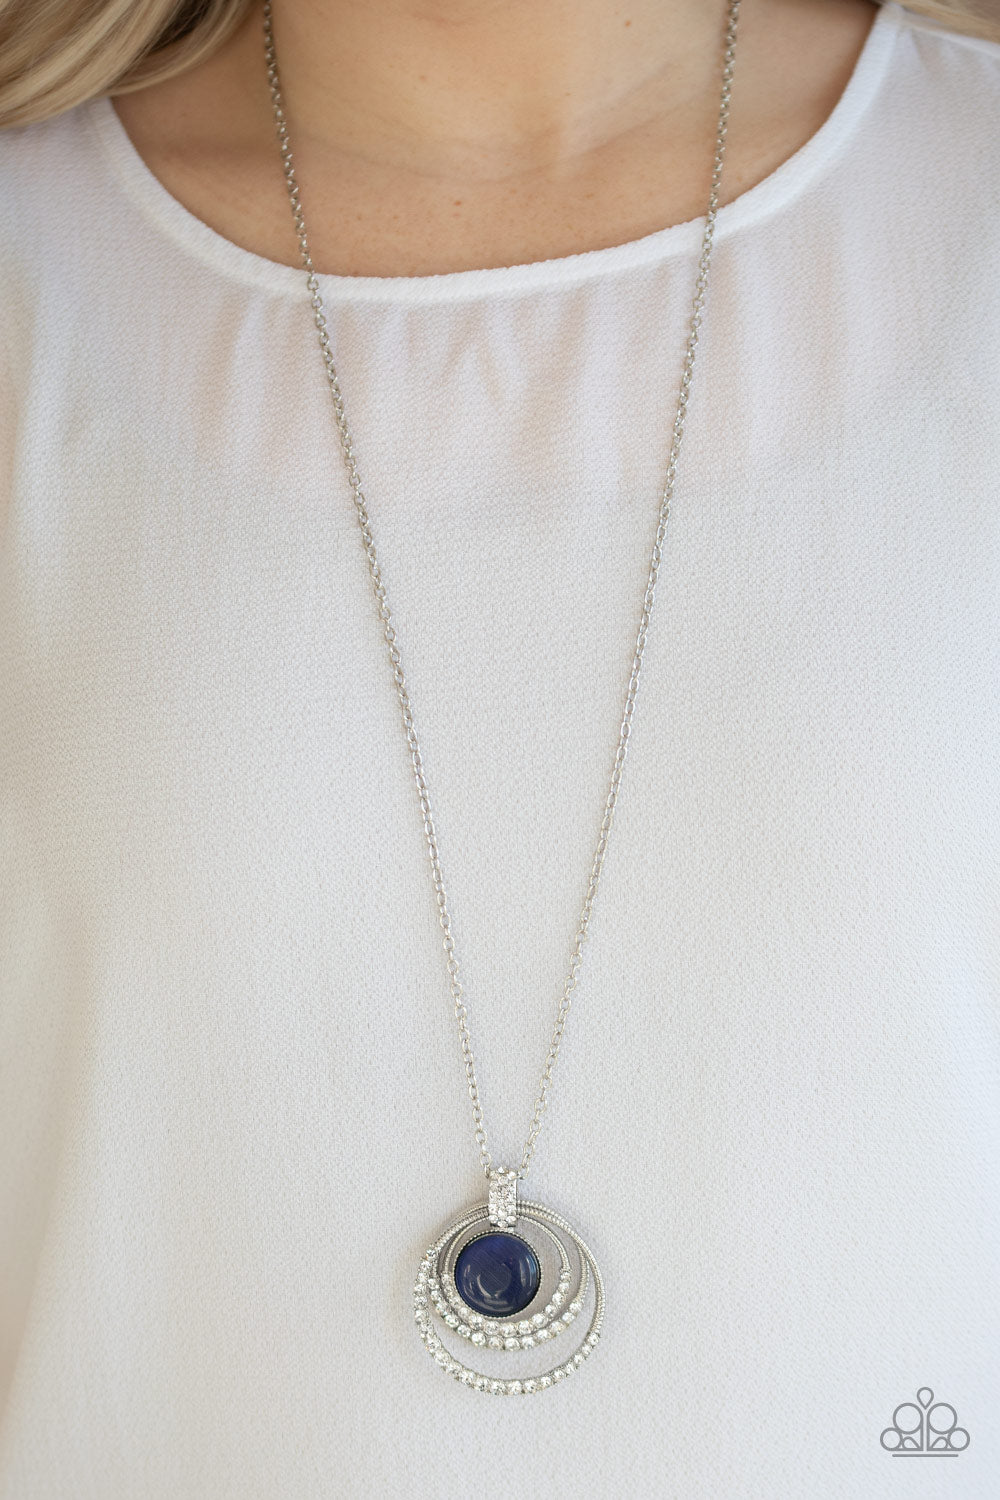 A Diamond A Day - Blue Paparazzi Necklace: April 2020 Life of the Party - Pink Dragon Jewels